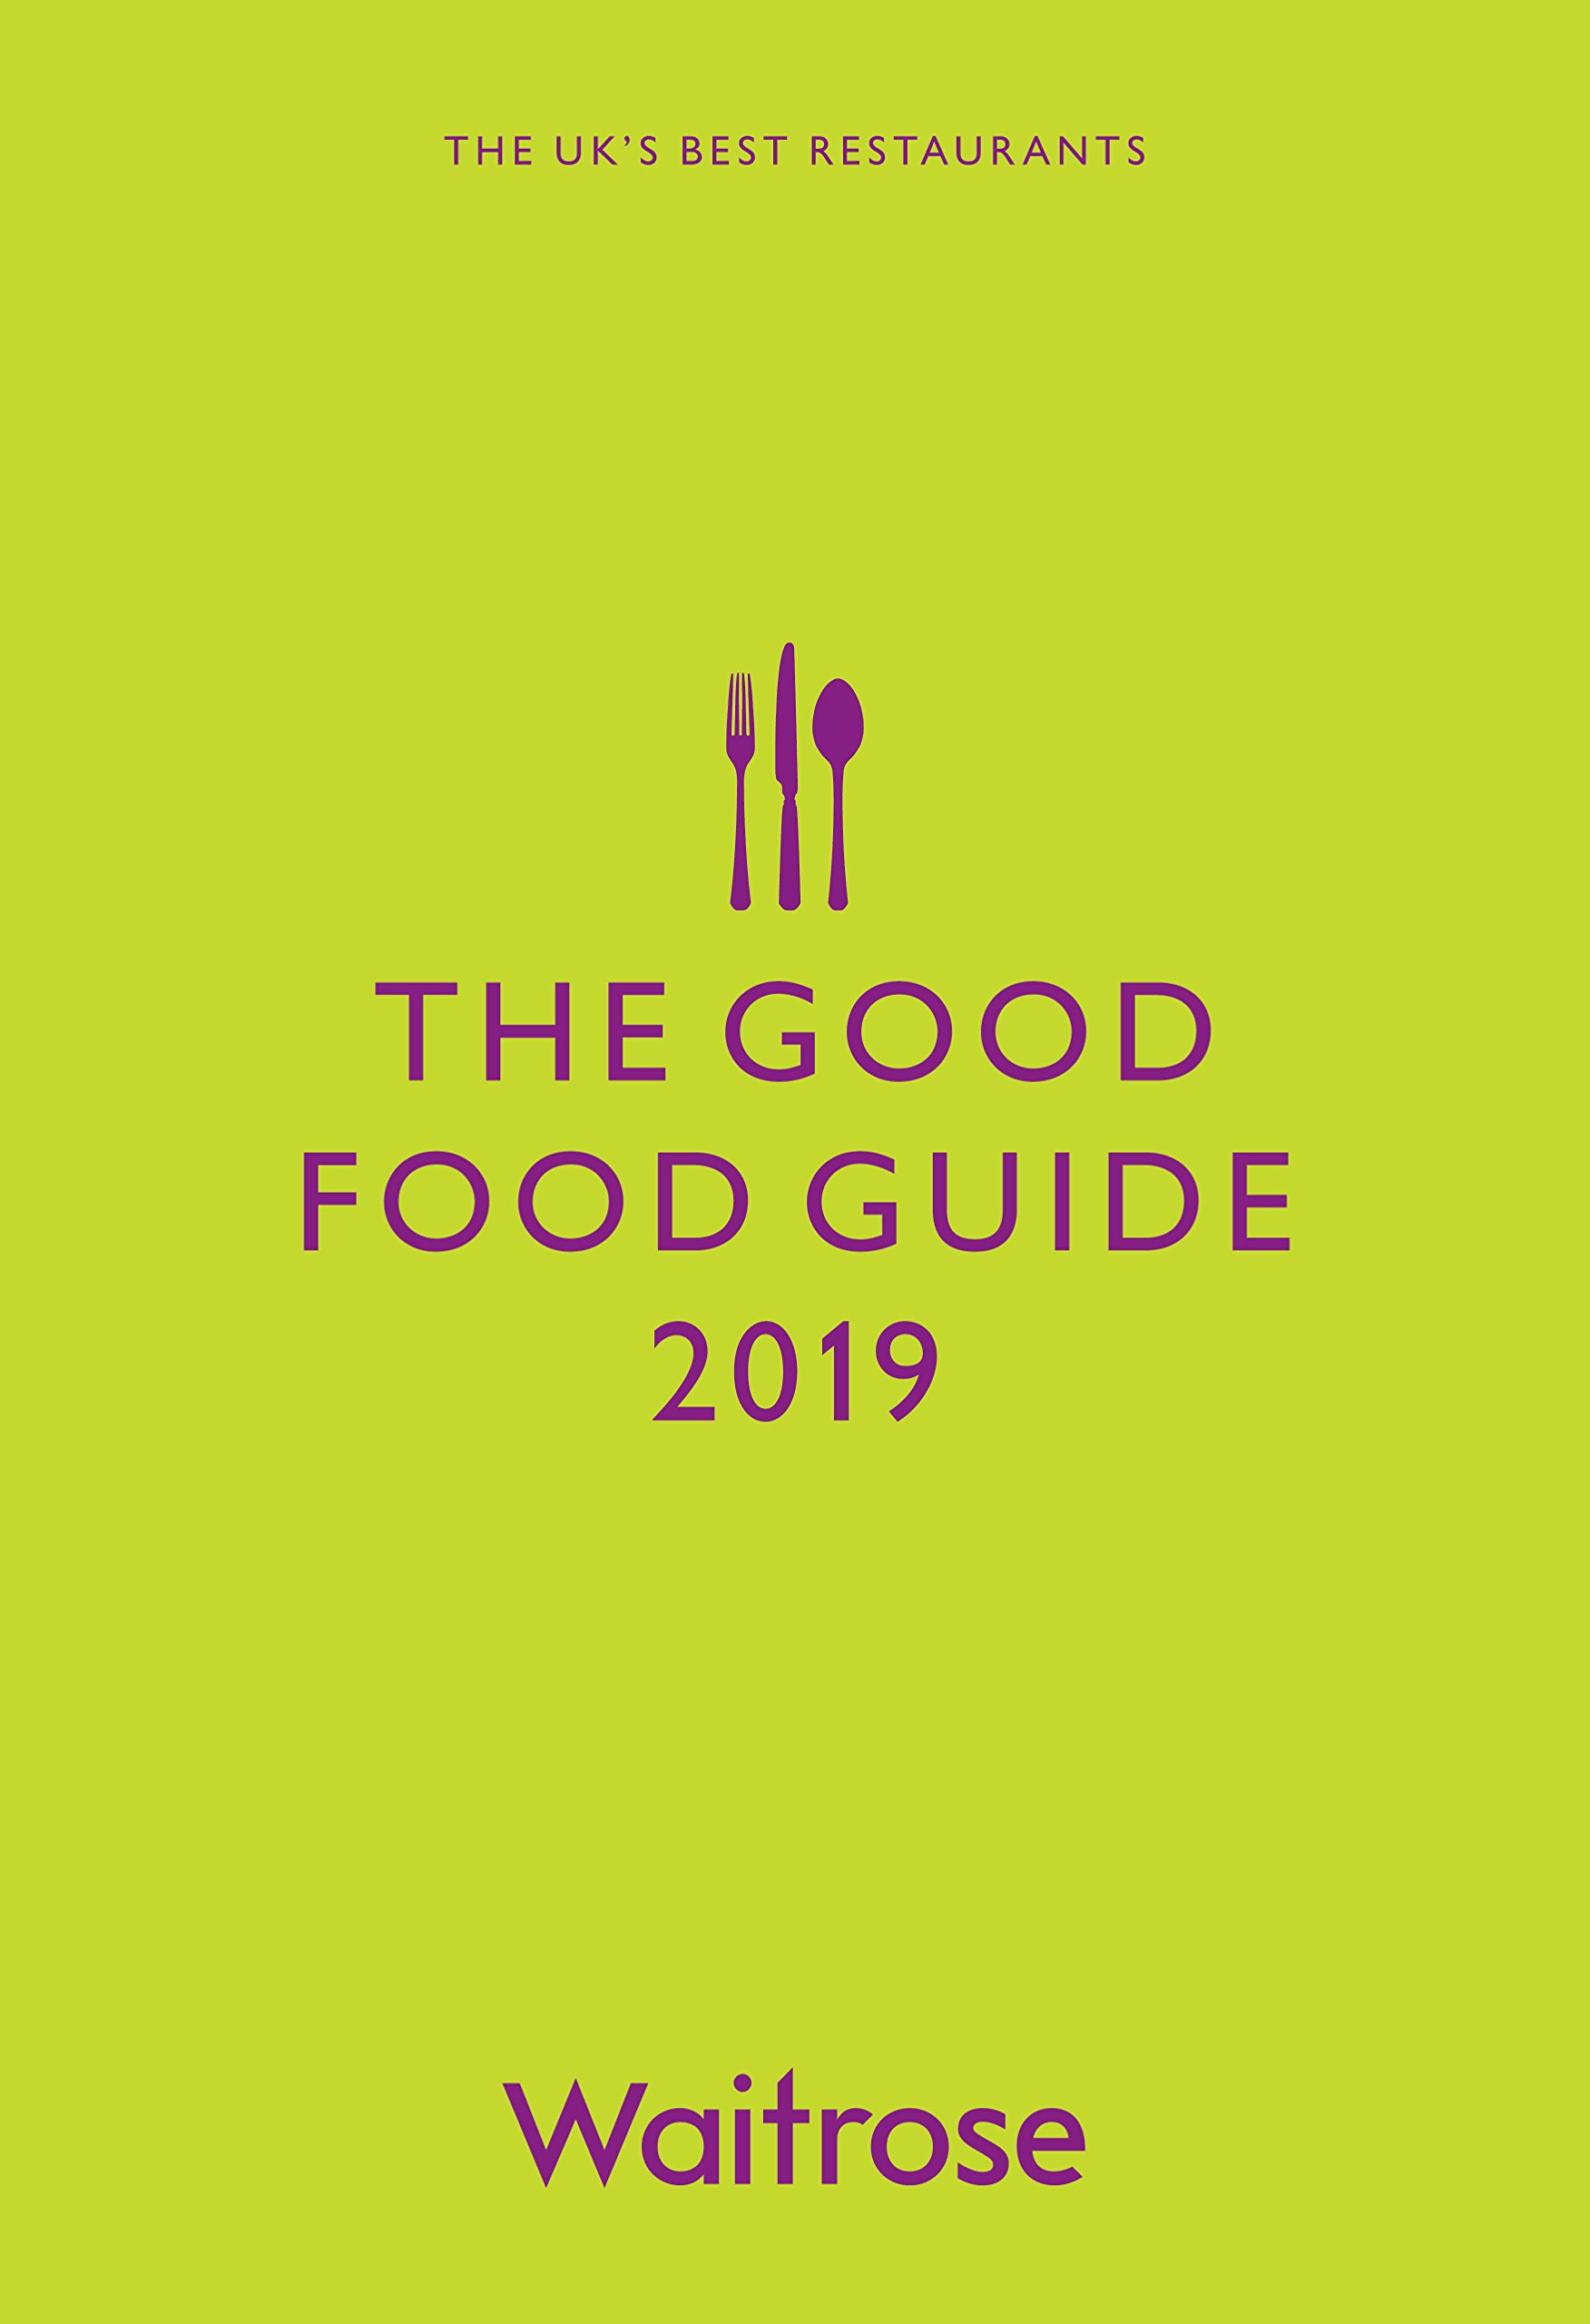 when will the 2018 good food guide be reliesed